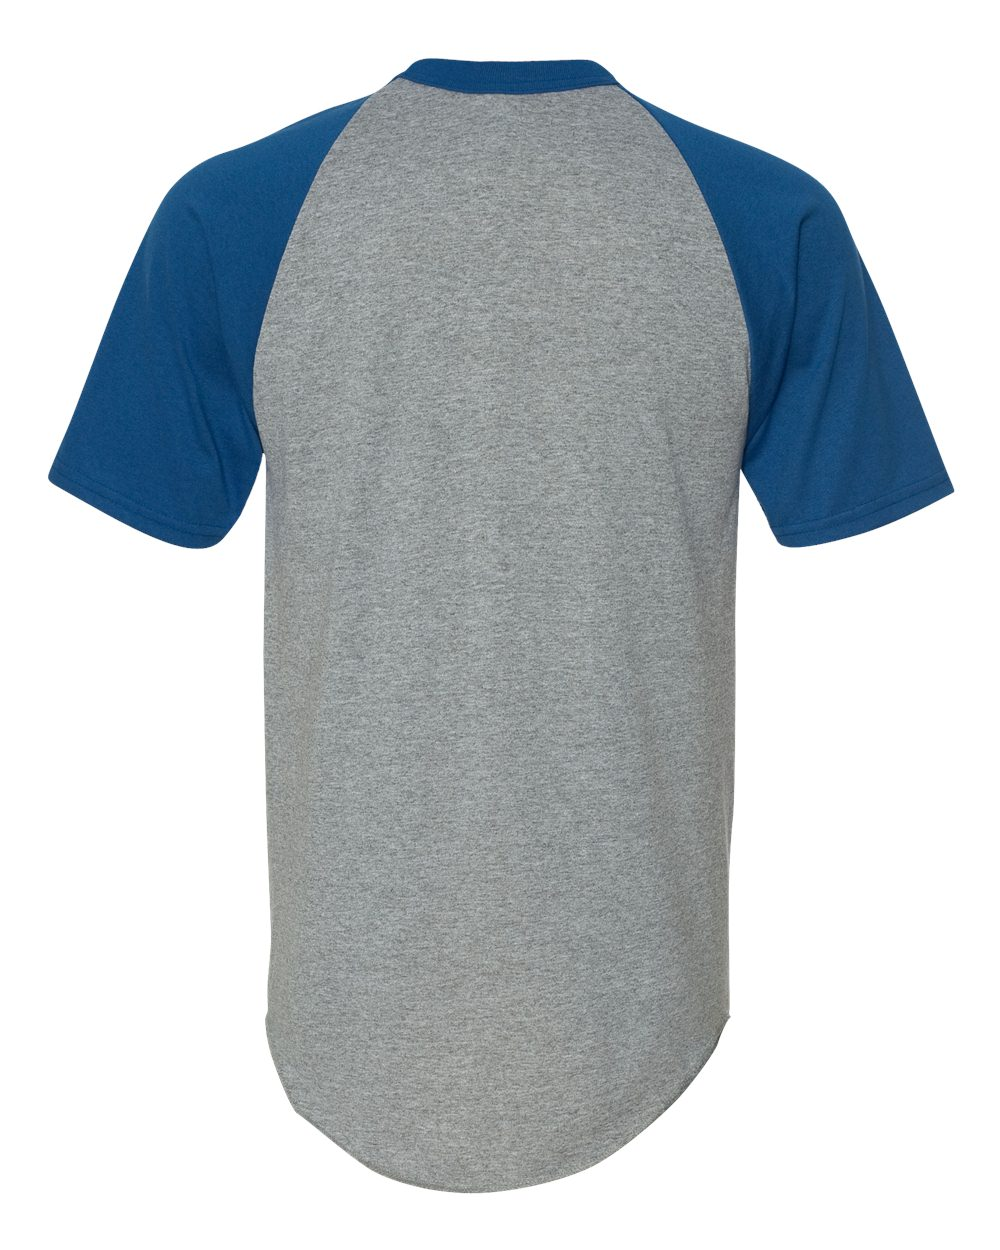 Augusta Sportswear Men/'s 50//50 Short-Sleeve Raglan T-Shirt 423 S-3XL